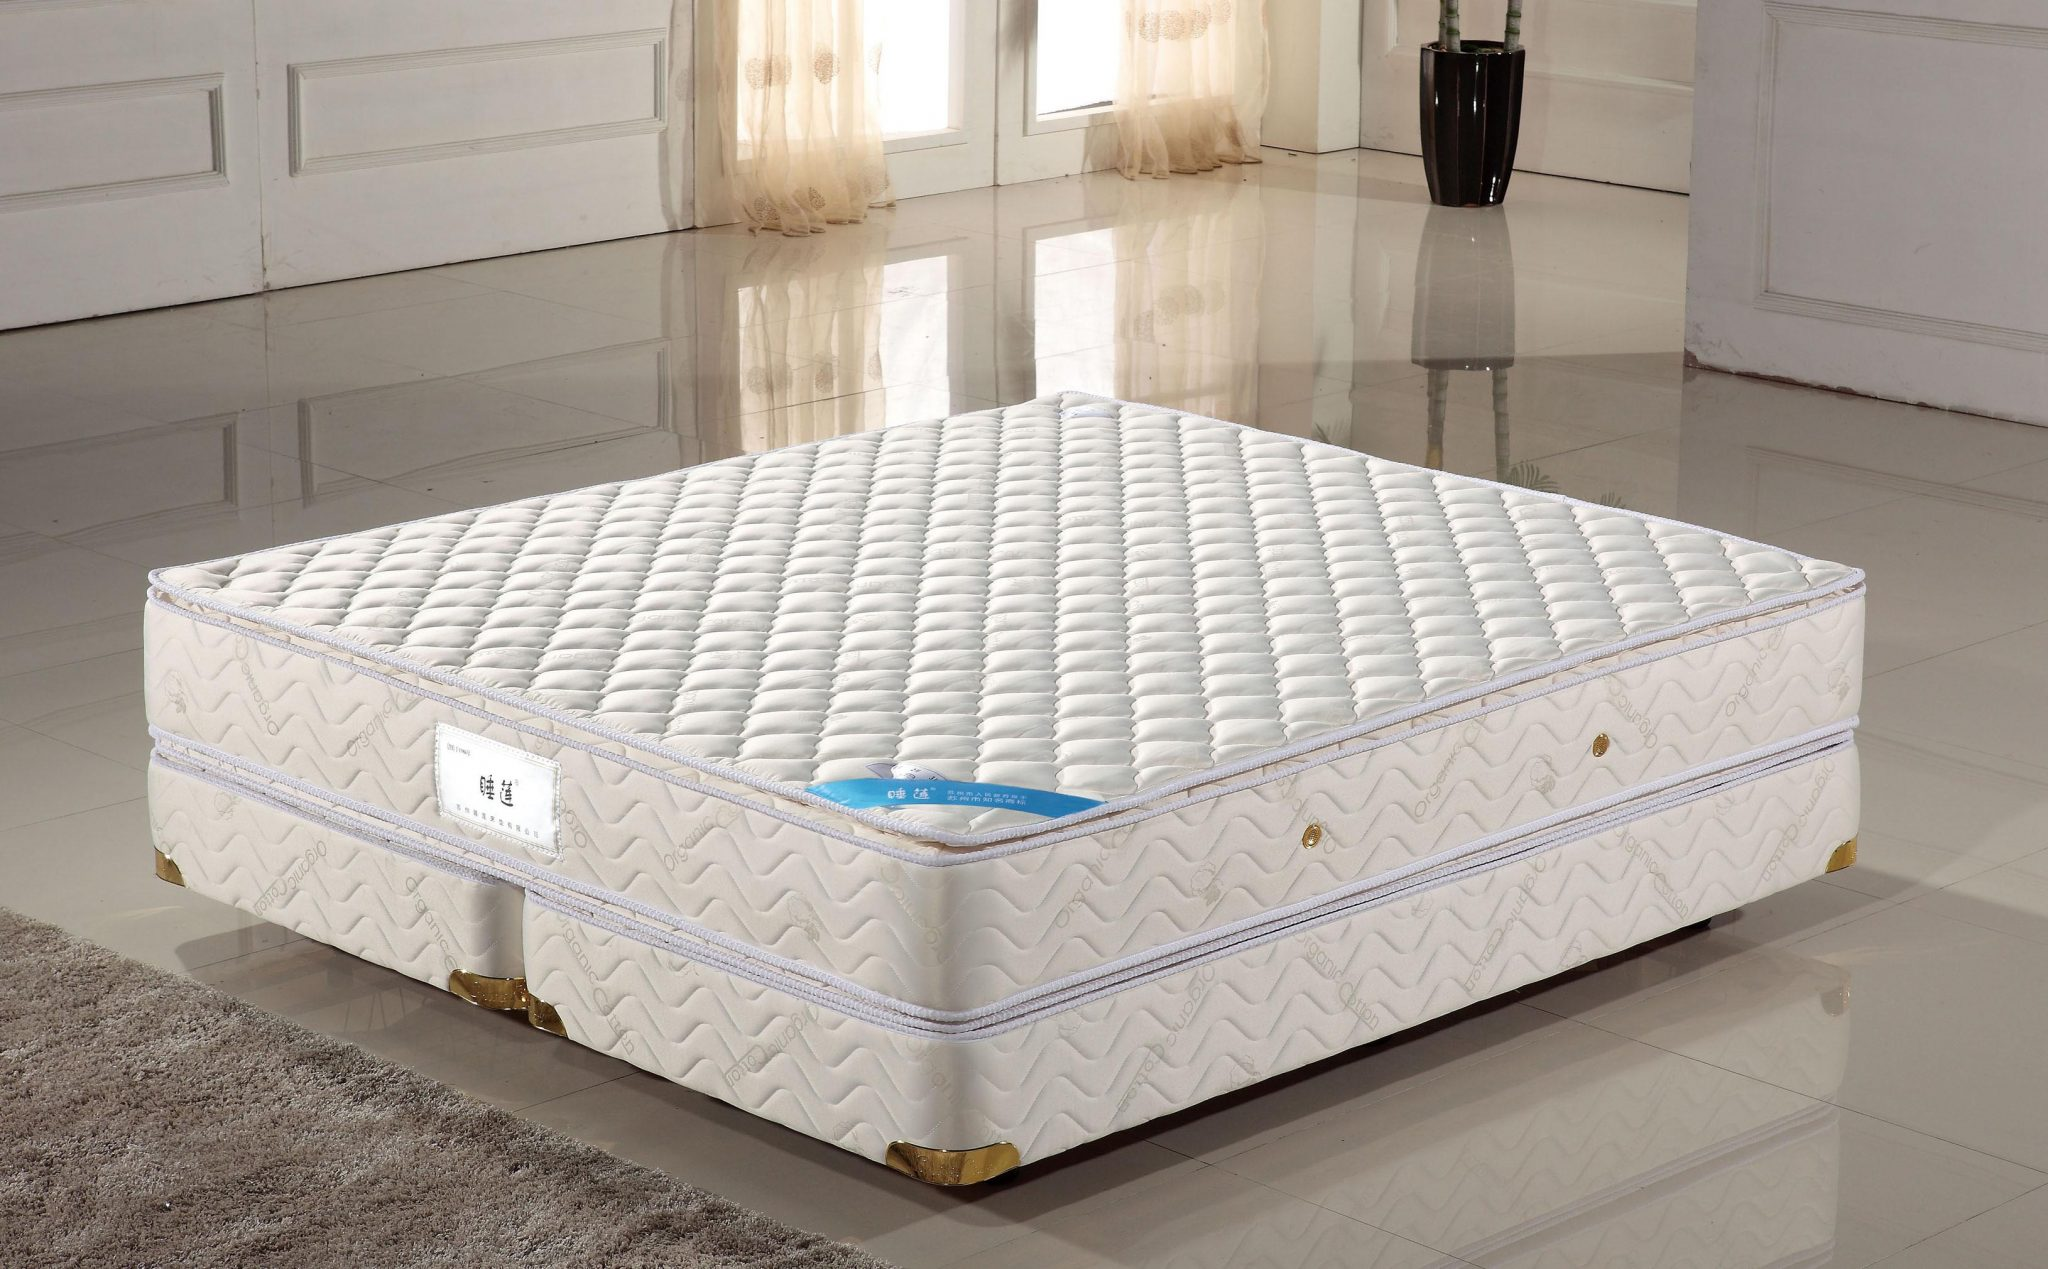 Philippines-Mattress-Market-1.jpg